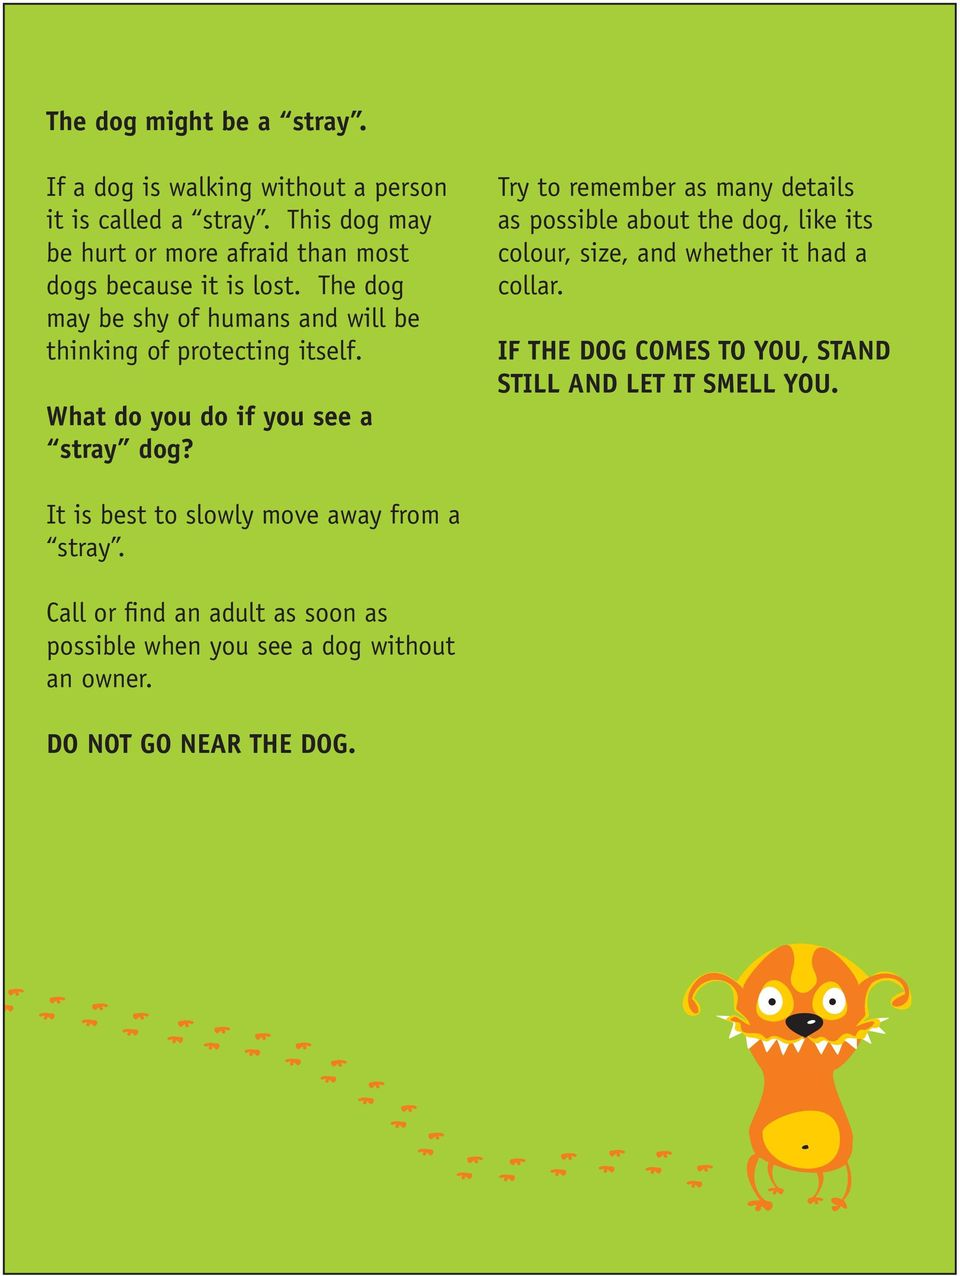 What do you do if you see a stray dog?